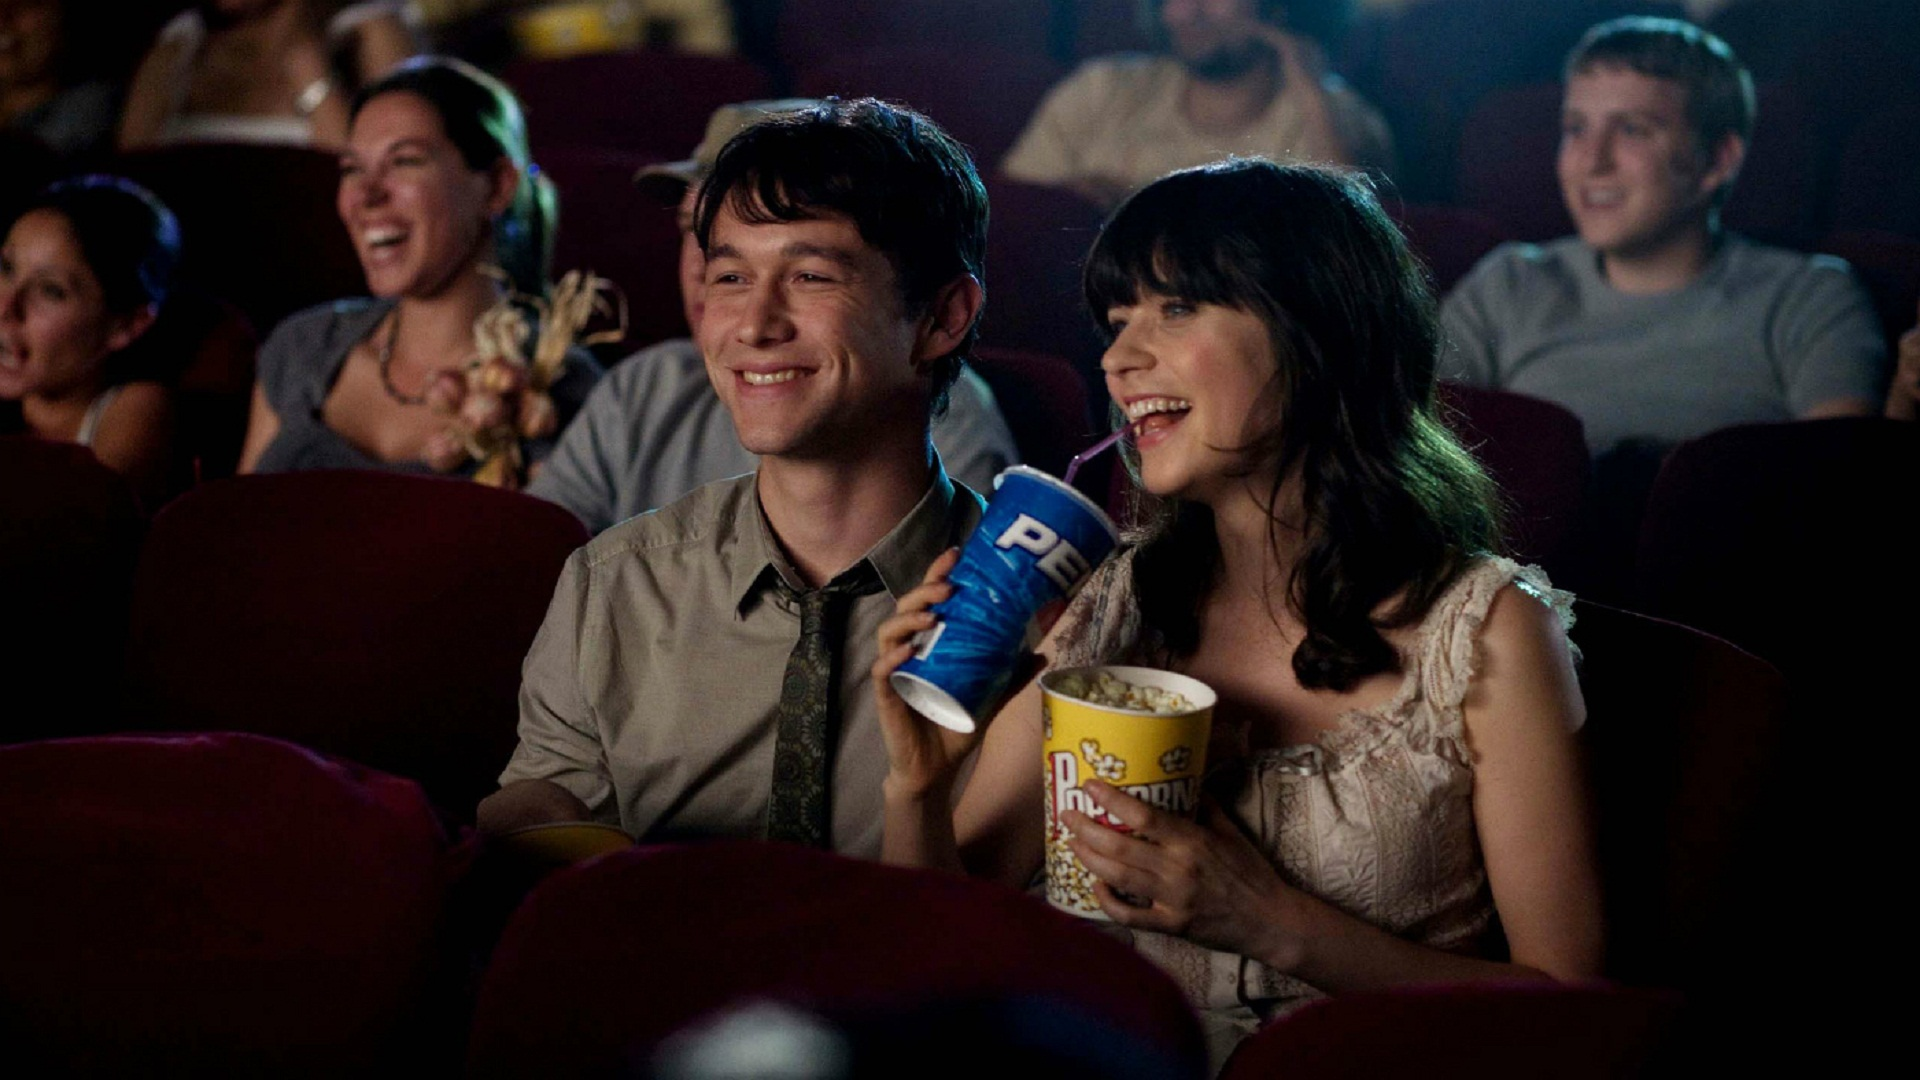 Cinco 'chick flicks' para ver en cuarentena